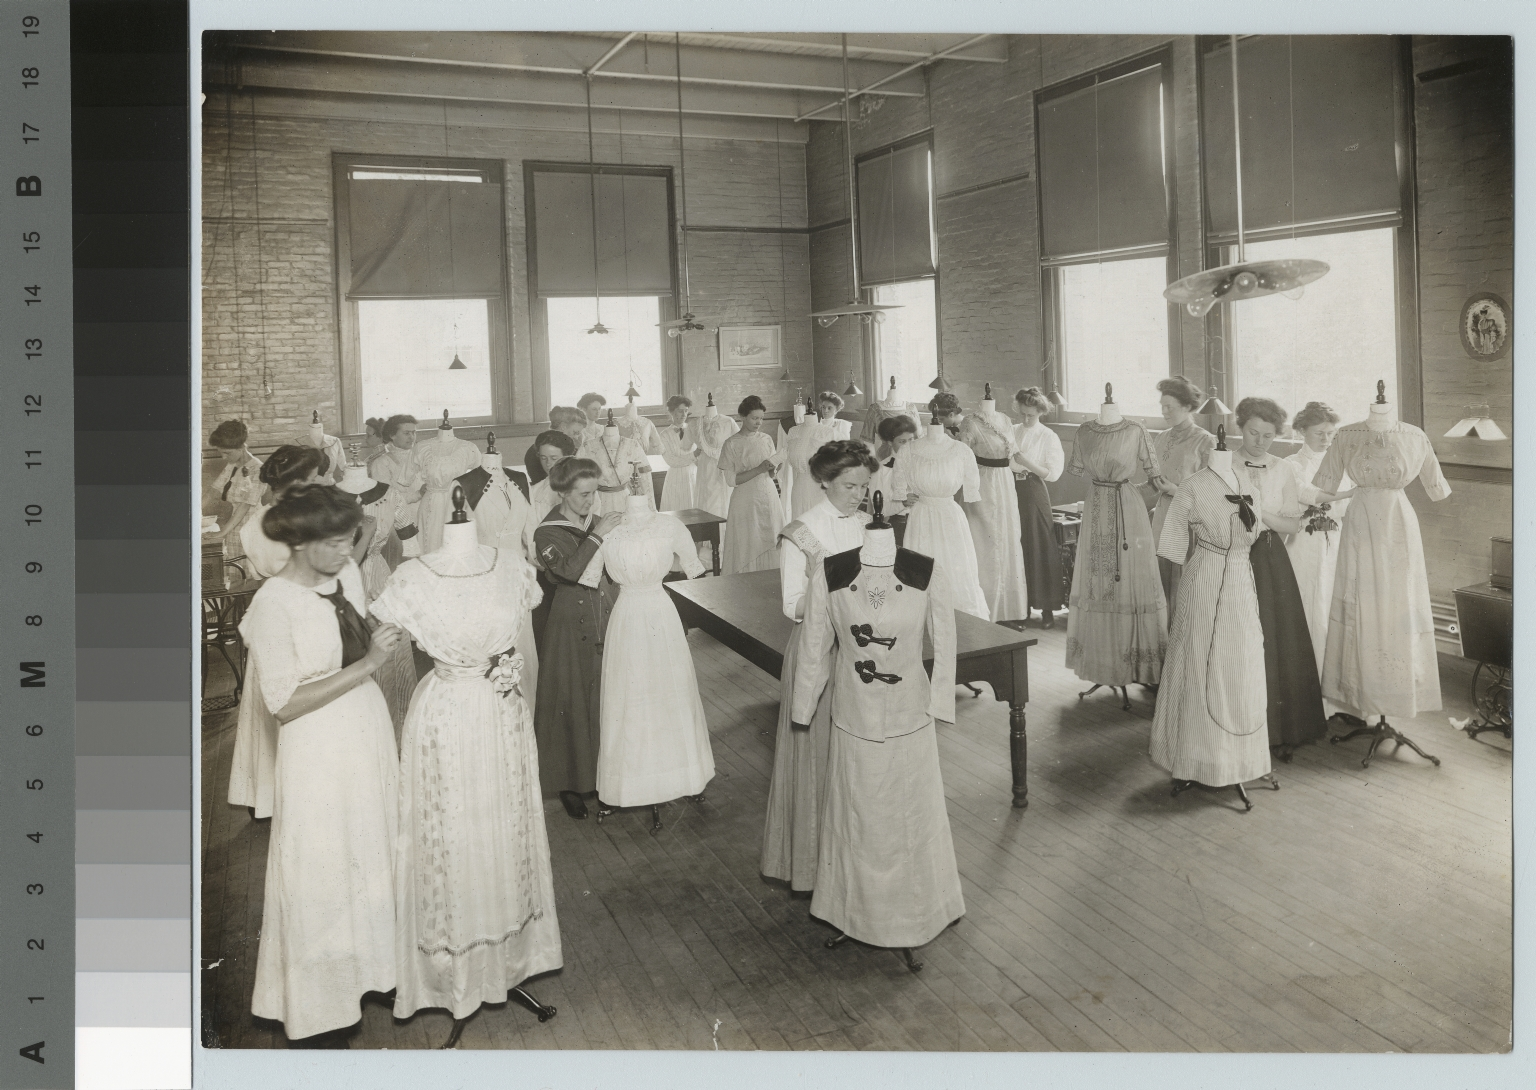 Dressmaking class, Department of Domestic Science and Art, Rochester Athenaeum and Mechanics Institute [1911]